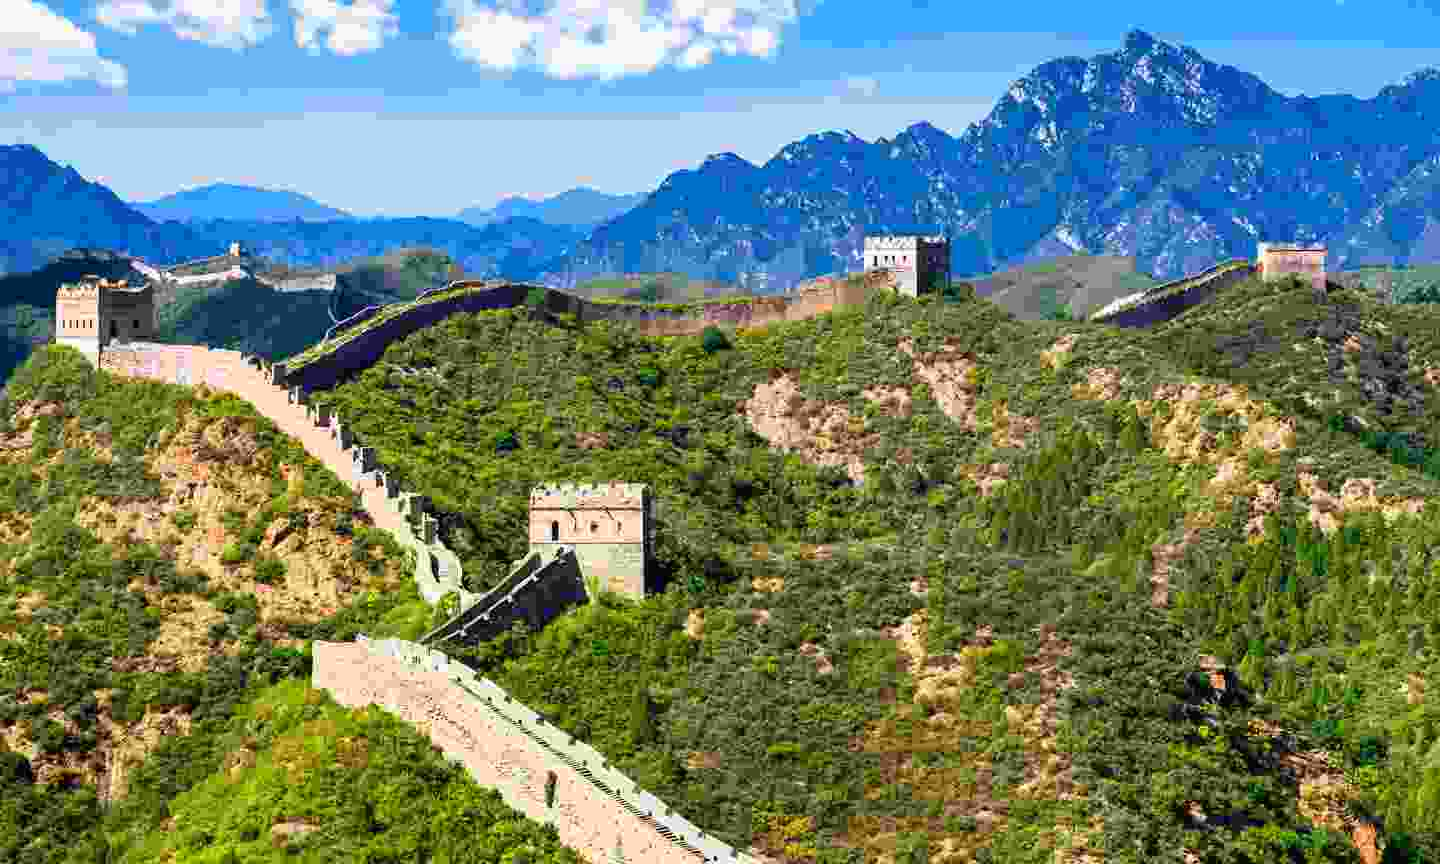 The magnificent Great Wall of China (Dreamstime)